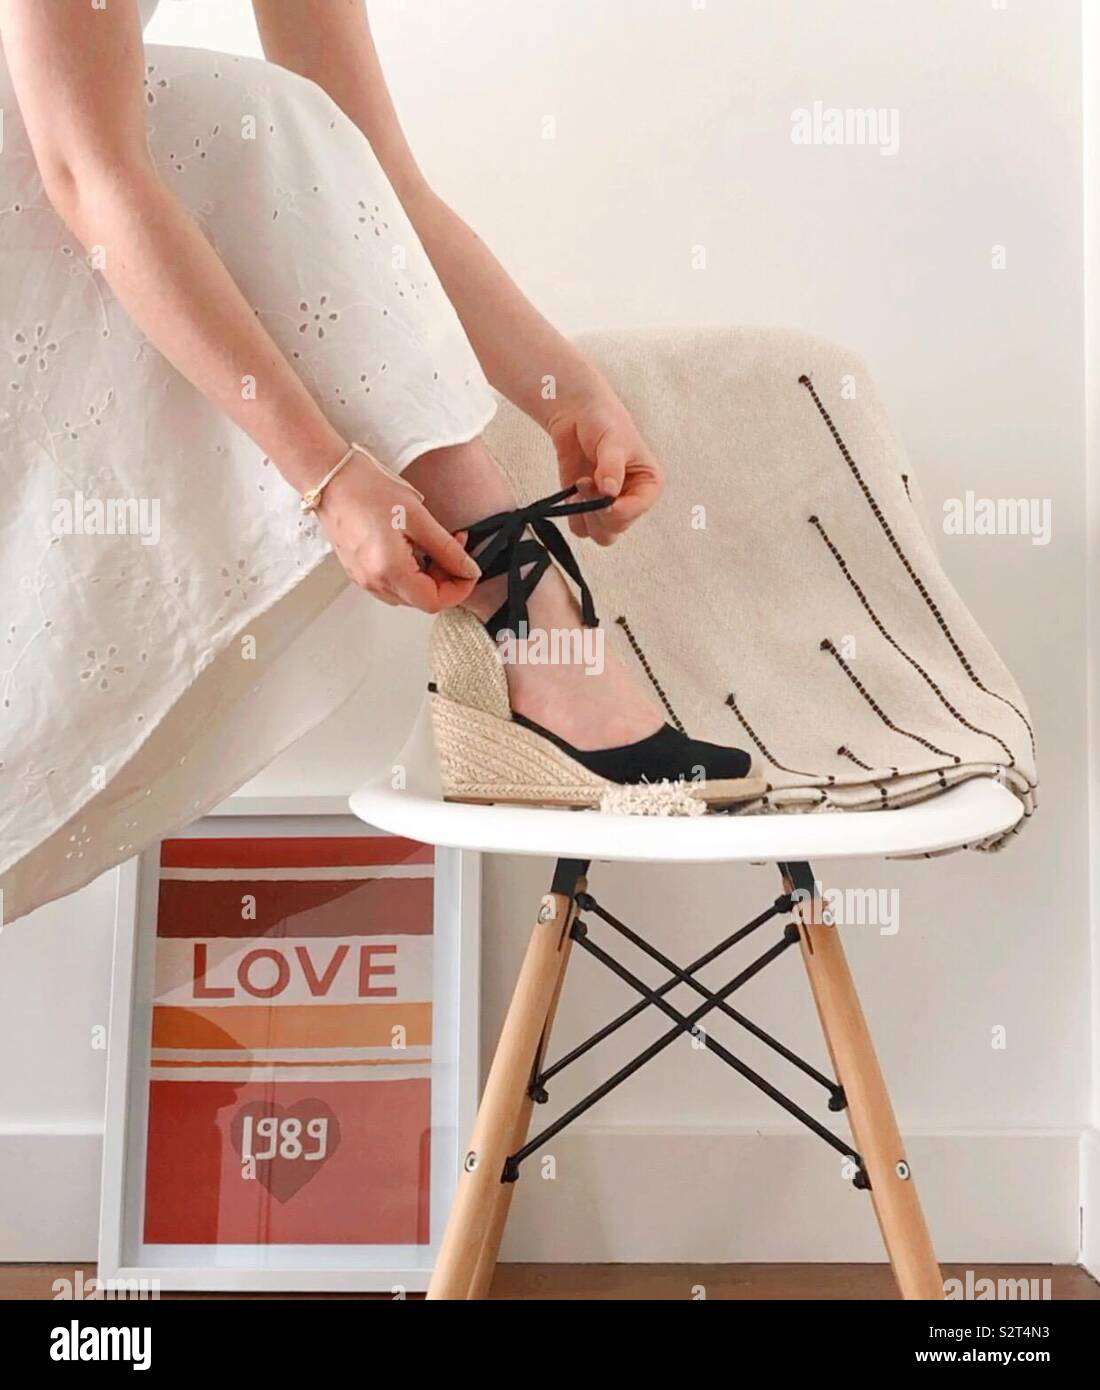 Woman in espadrilles heels standing on chair - Stock Image